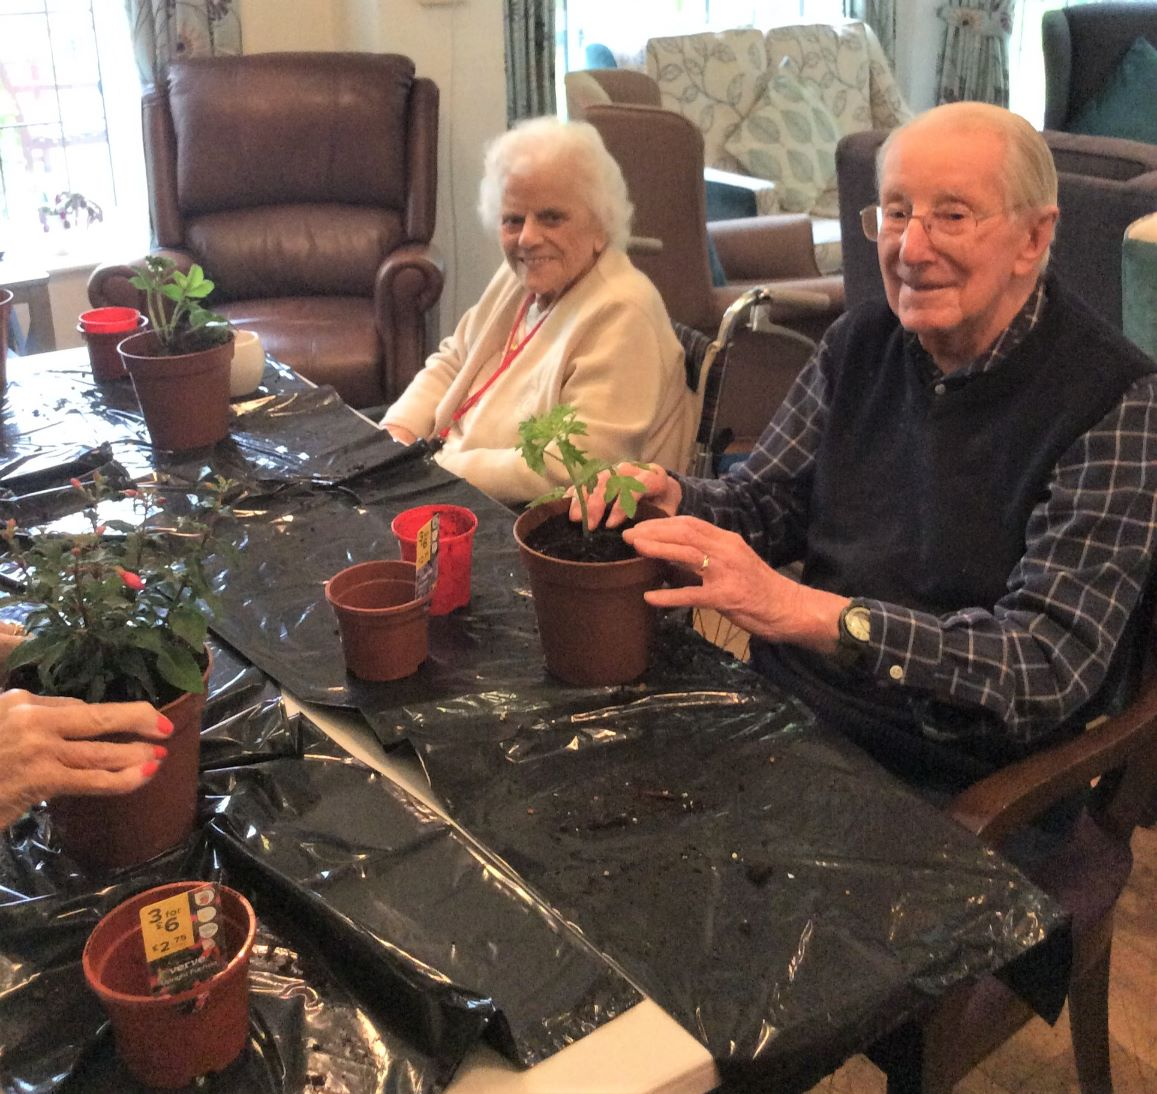 Lawton Manor Care Home, Staffordshire-Residents Brenda and Roy busy potting plants